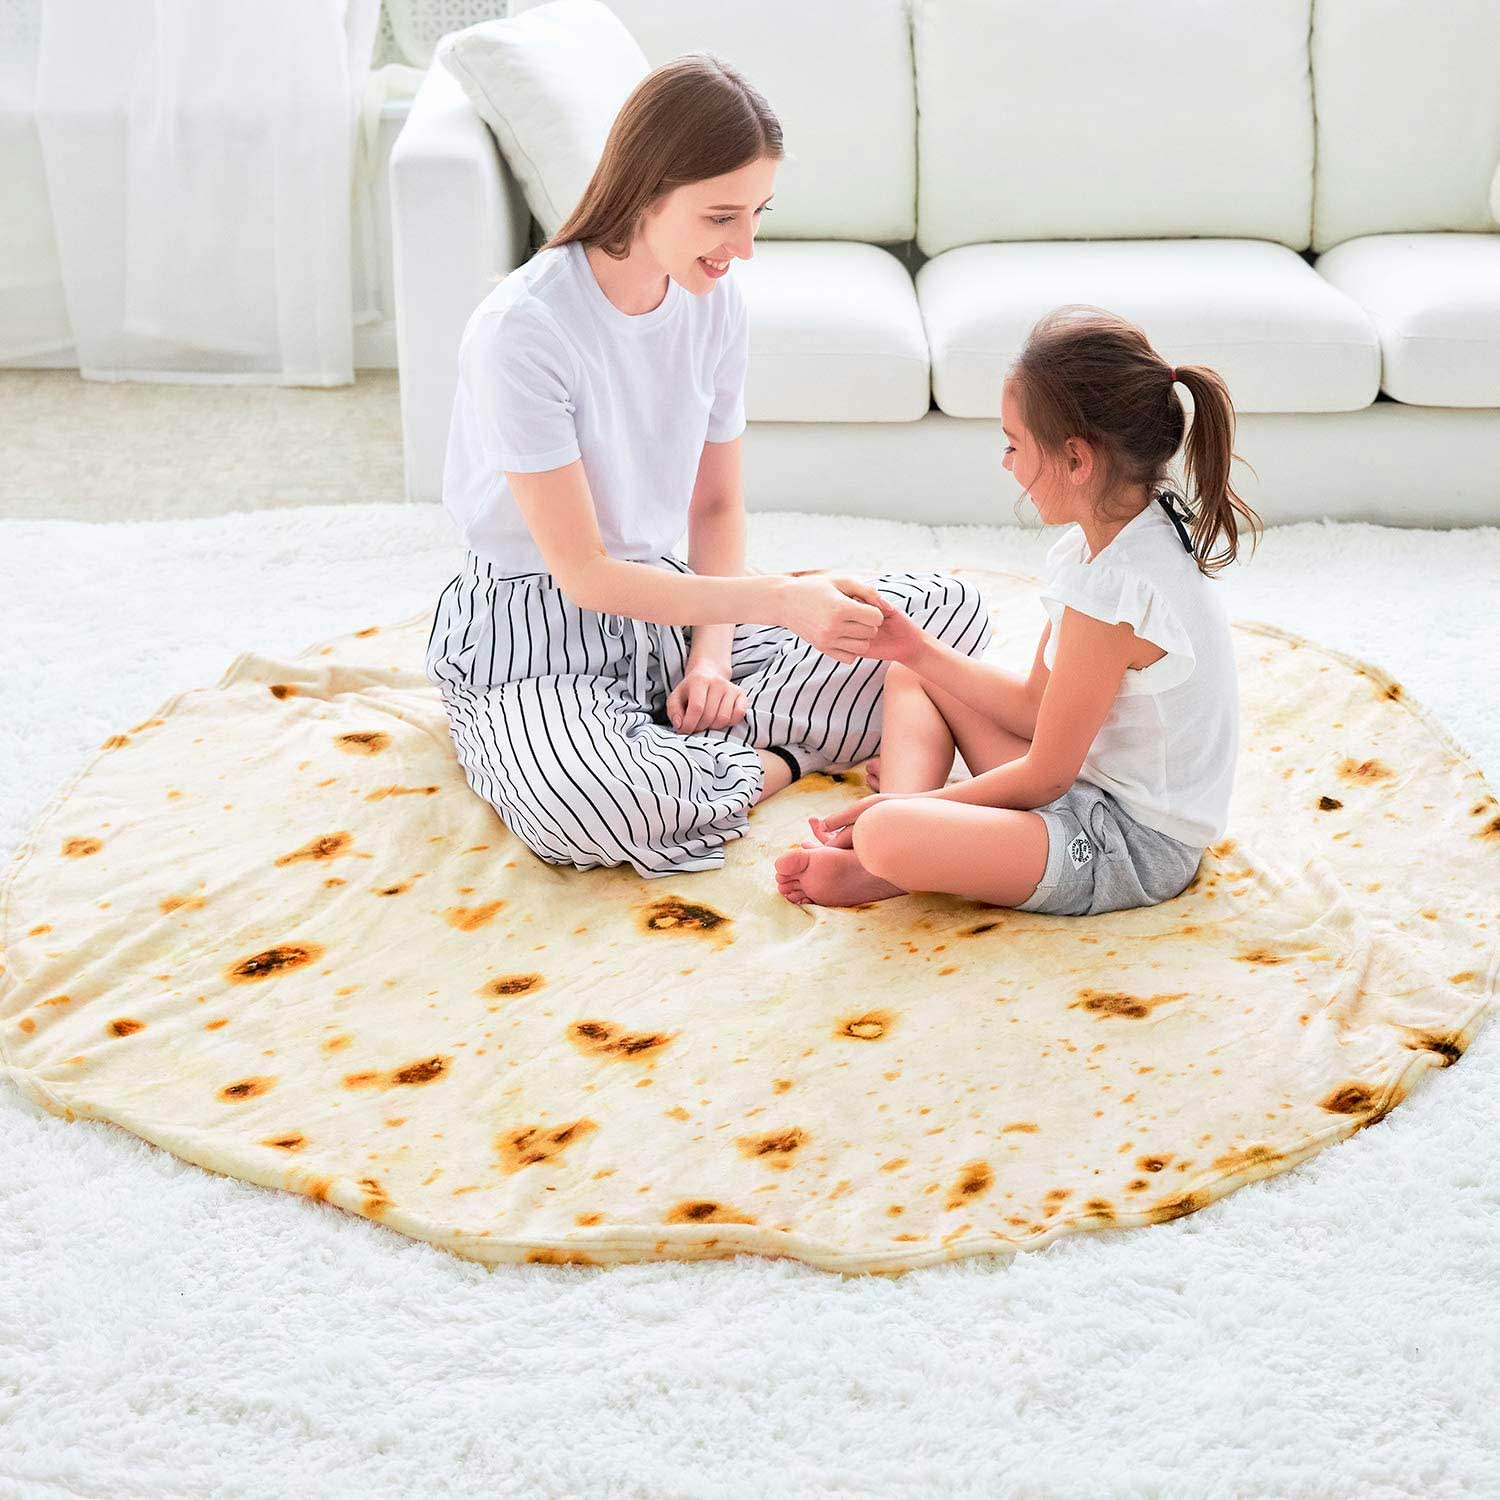 CASOFU Burritos Blanket, Giant Flour Tortilla Throw Blanket, Novelty Tortilla Blanket for Your Family, 285 GSM Soft and Comfortable Flannel Taco Blanket for Kids